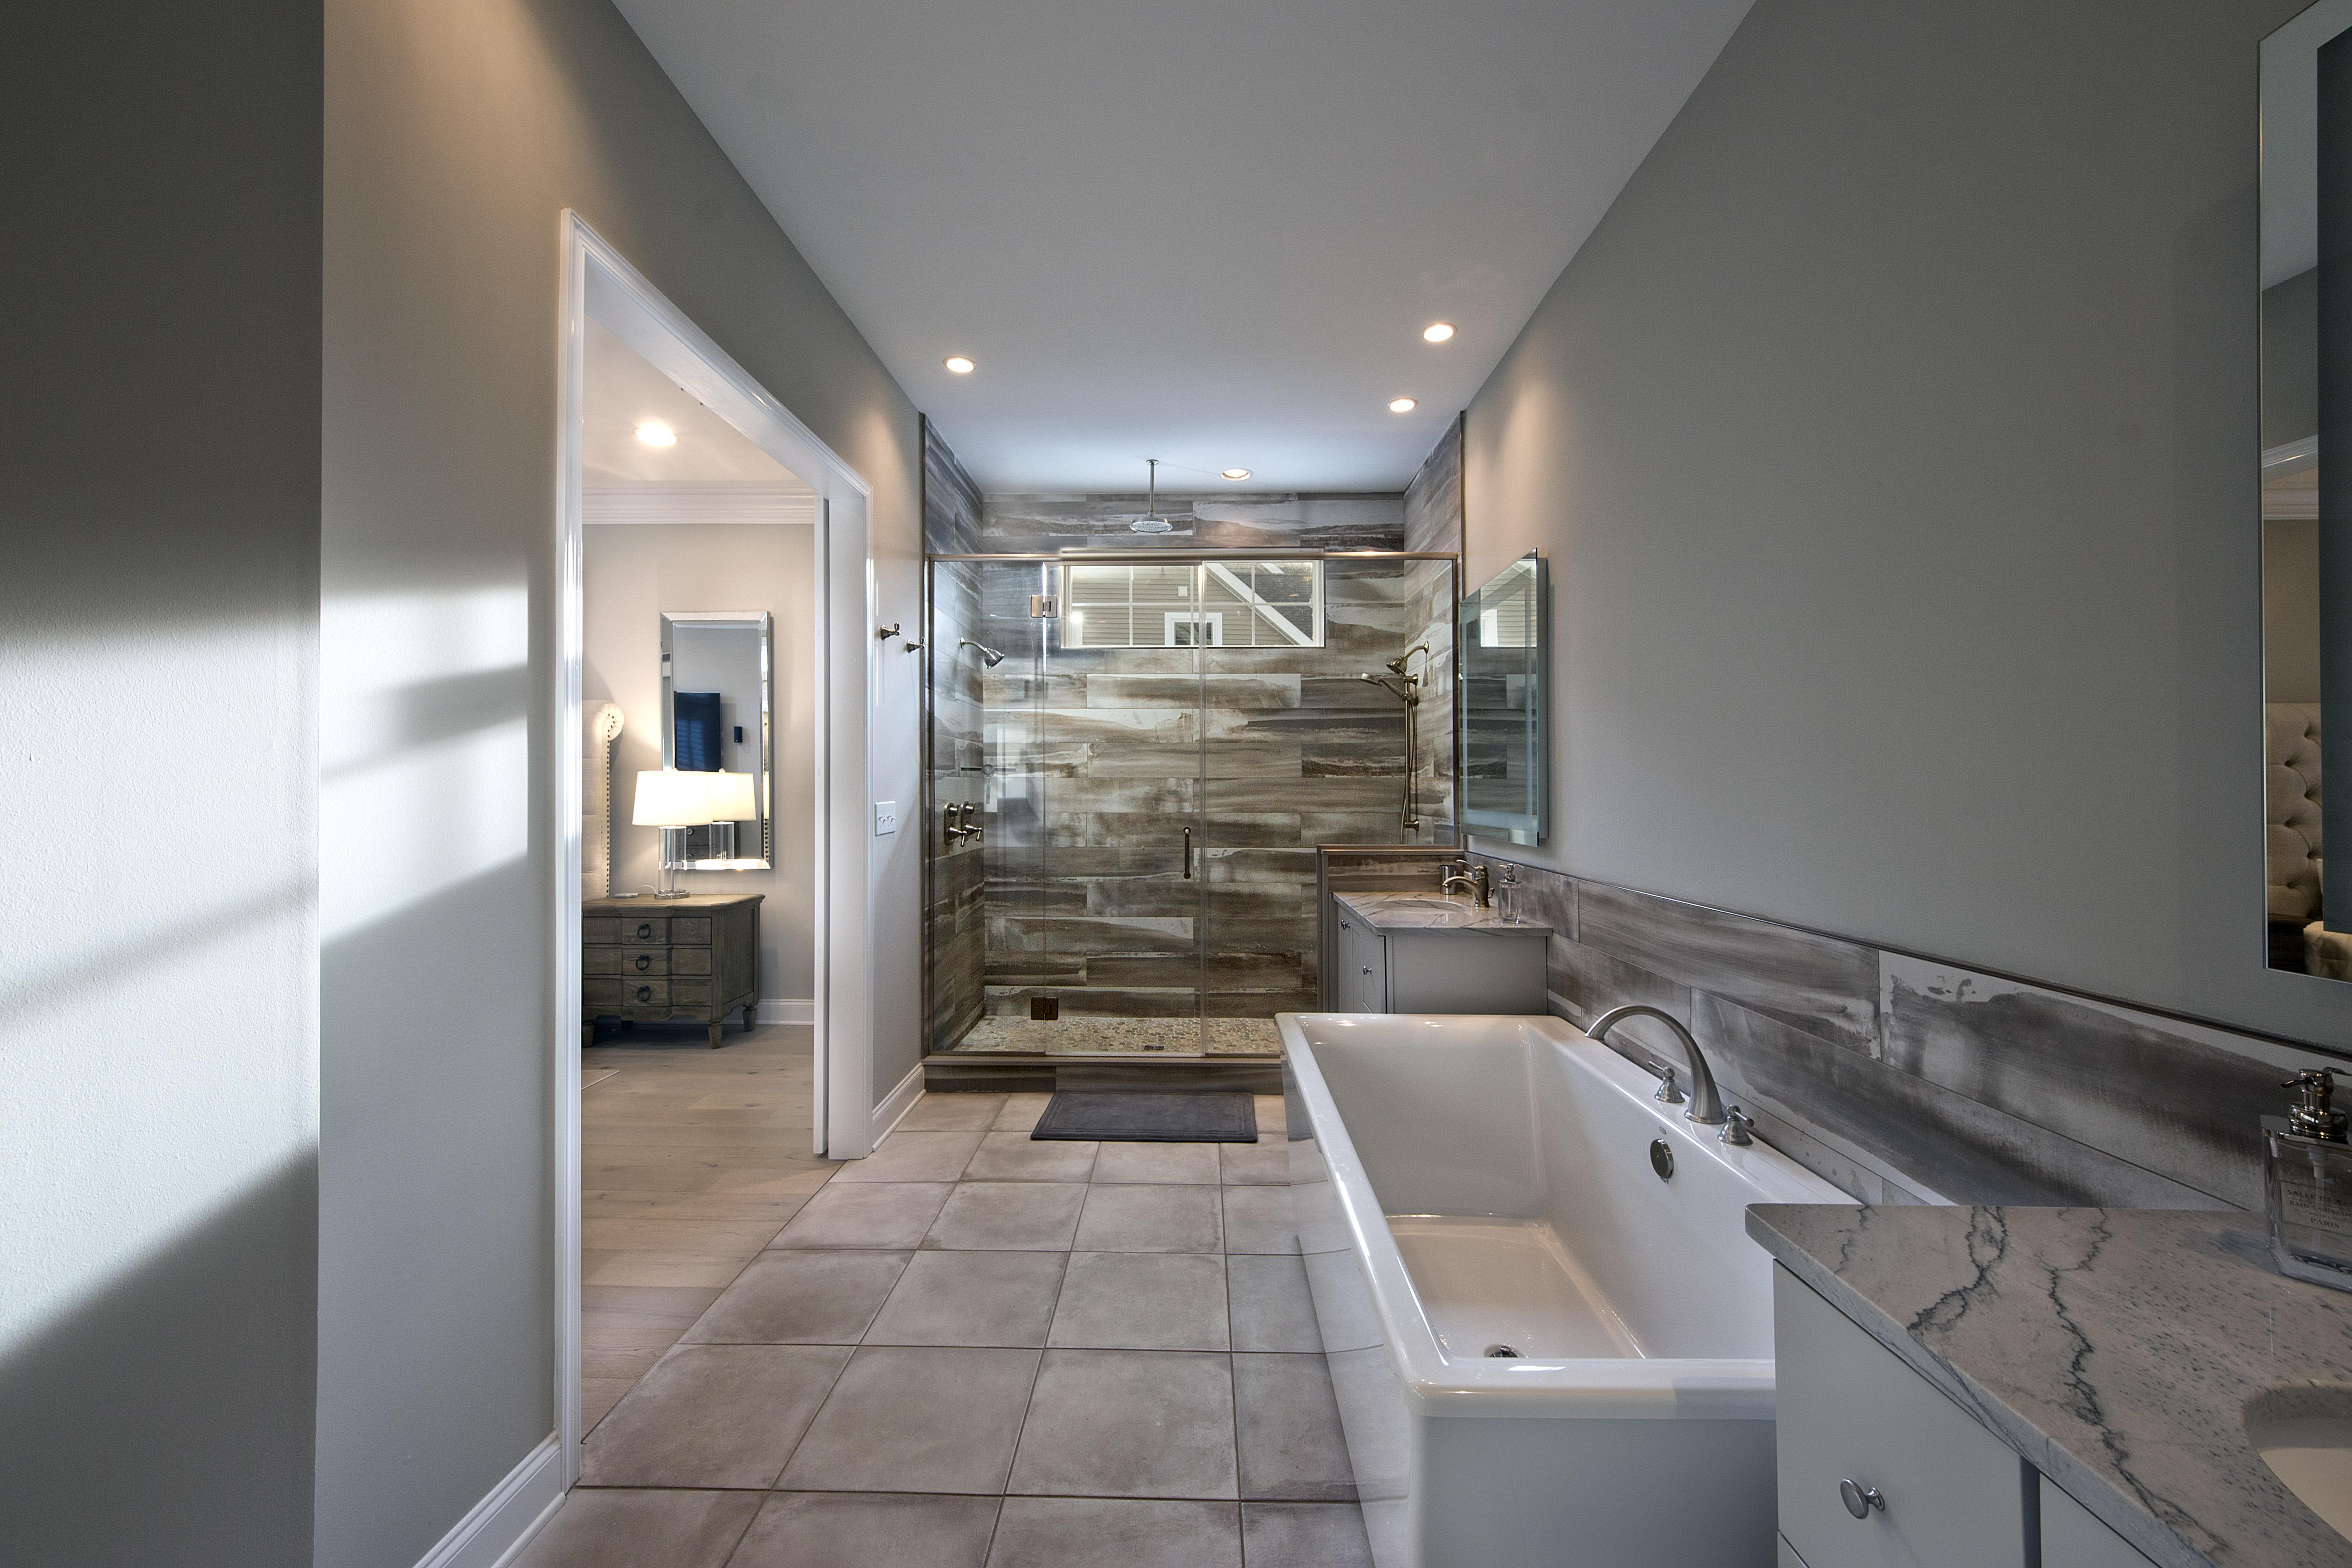 Bathroom featured in The Georgetown By Ashburn Homes in Dover, DE